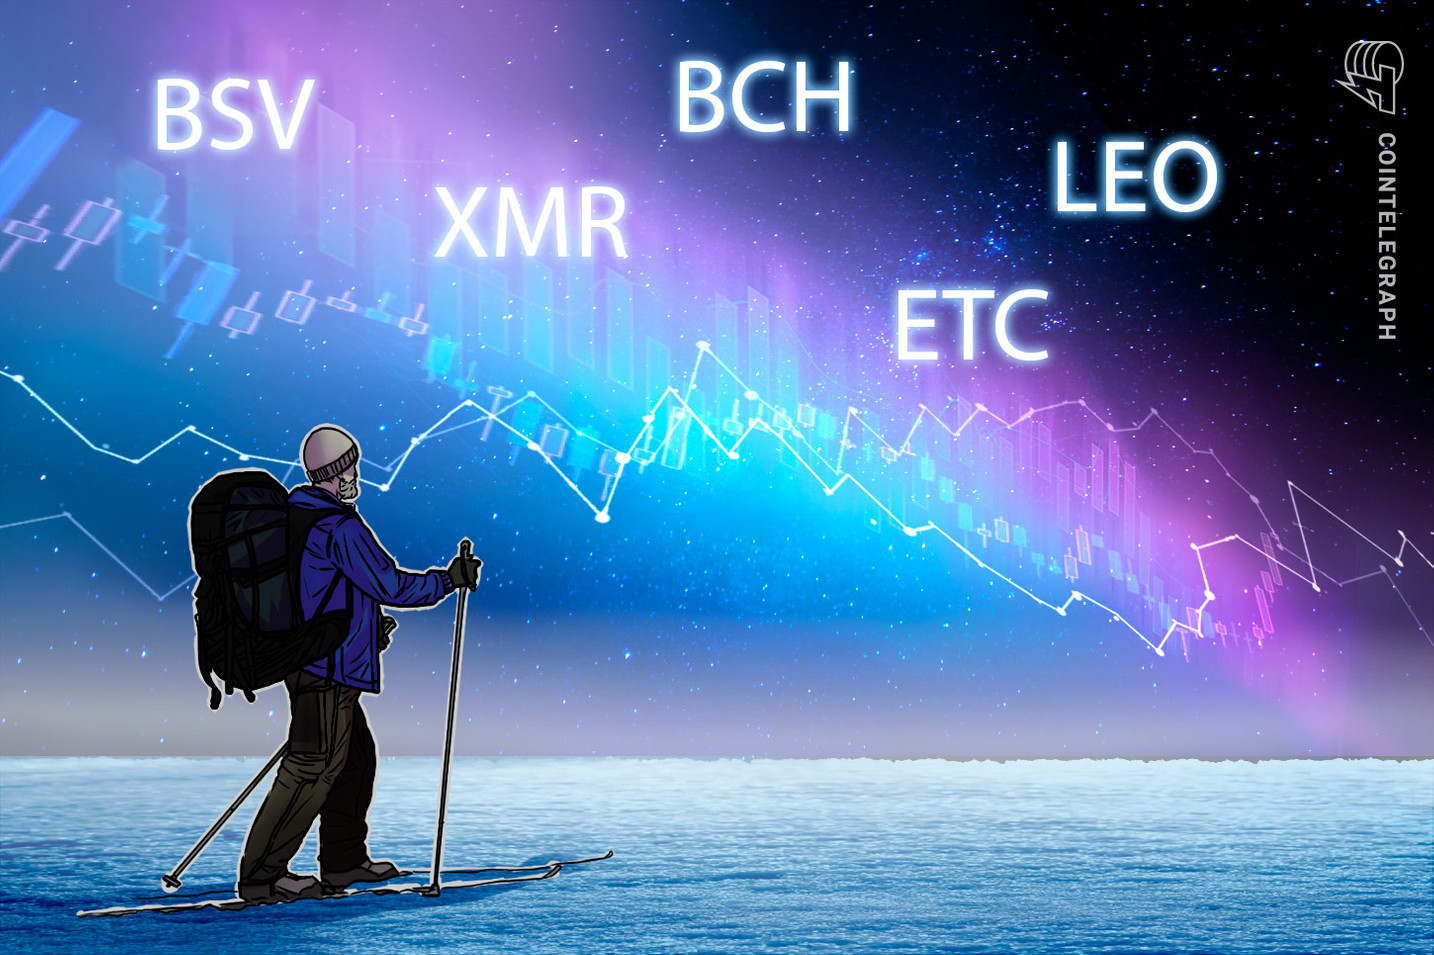 Top 5 Kryptos der Woche: BSV, XMR, ETC, BCH, LEO